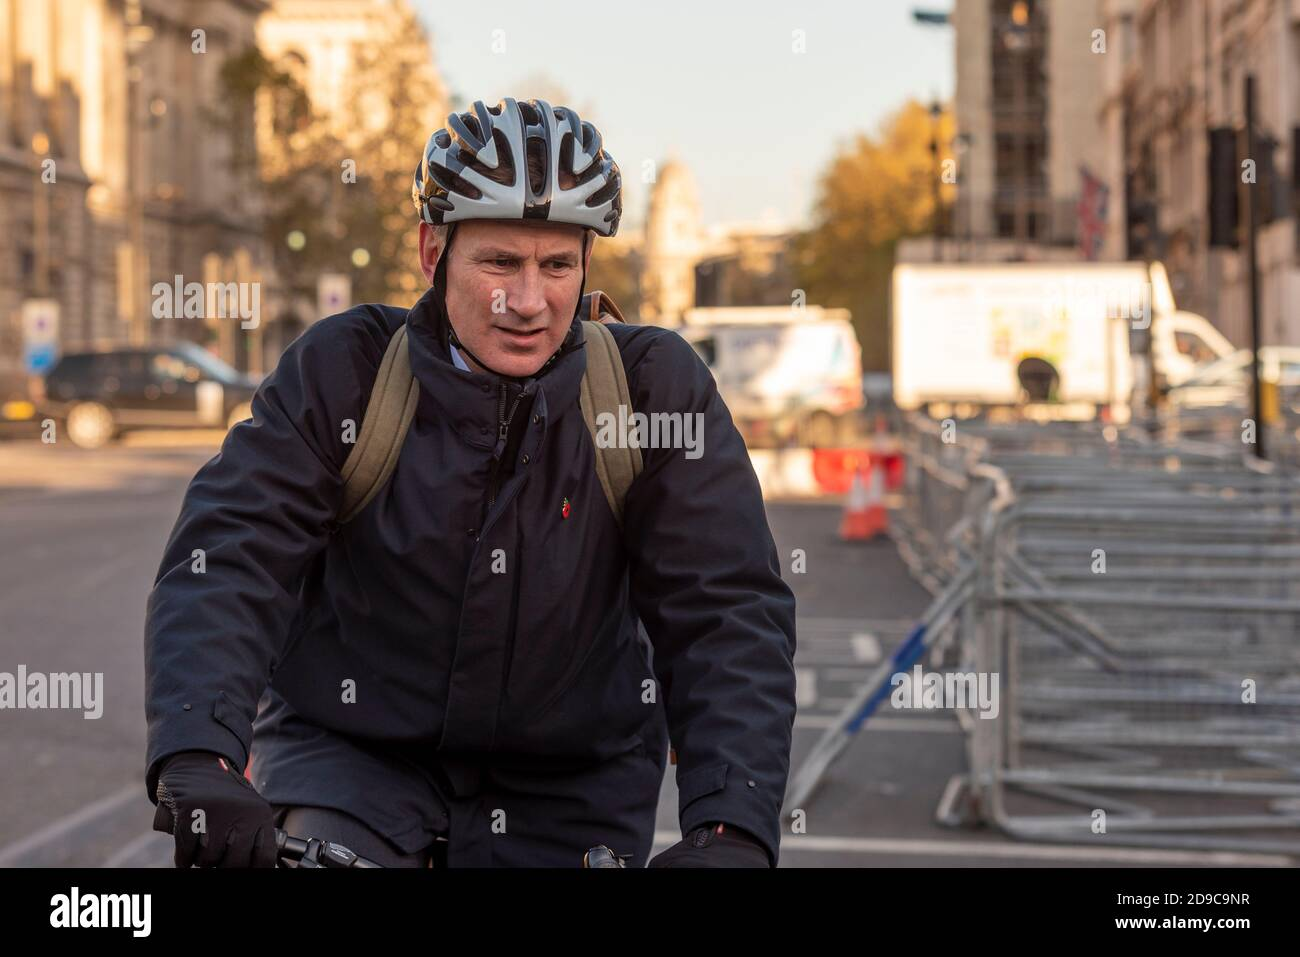 jeremy-hunt-mp-arriving-at-parliament-on-a-bicycle-on-the-day-of-the-vote-to-go-into-lockdown-2-tory-member-of-parliament-for-south-west-surrey-2D9C9NR.jpg